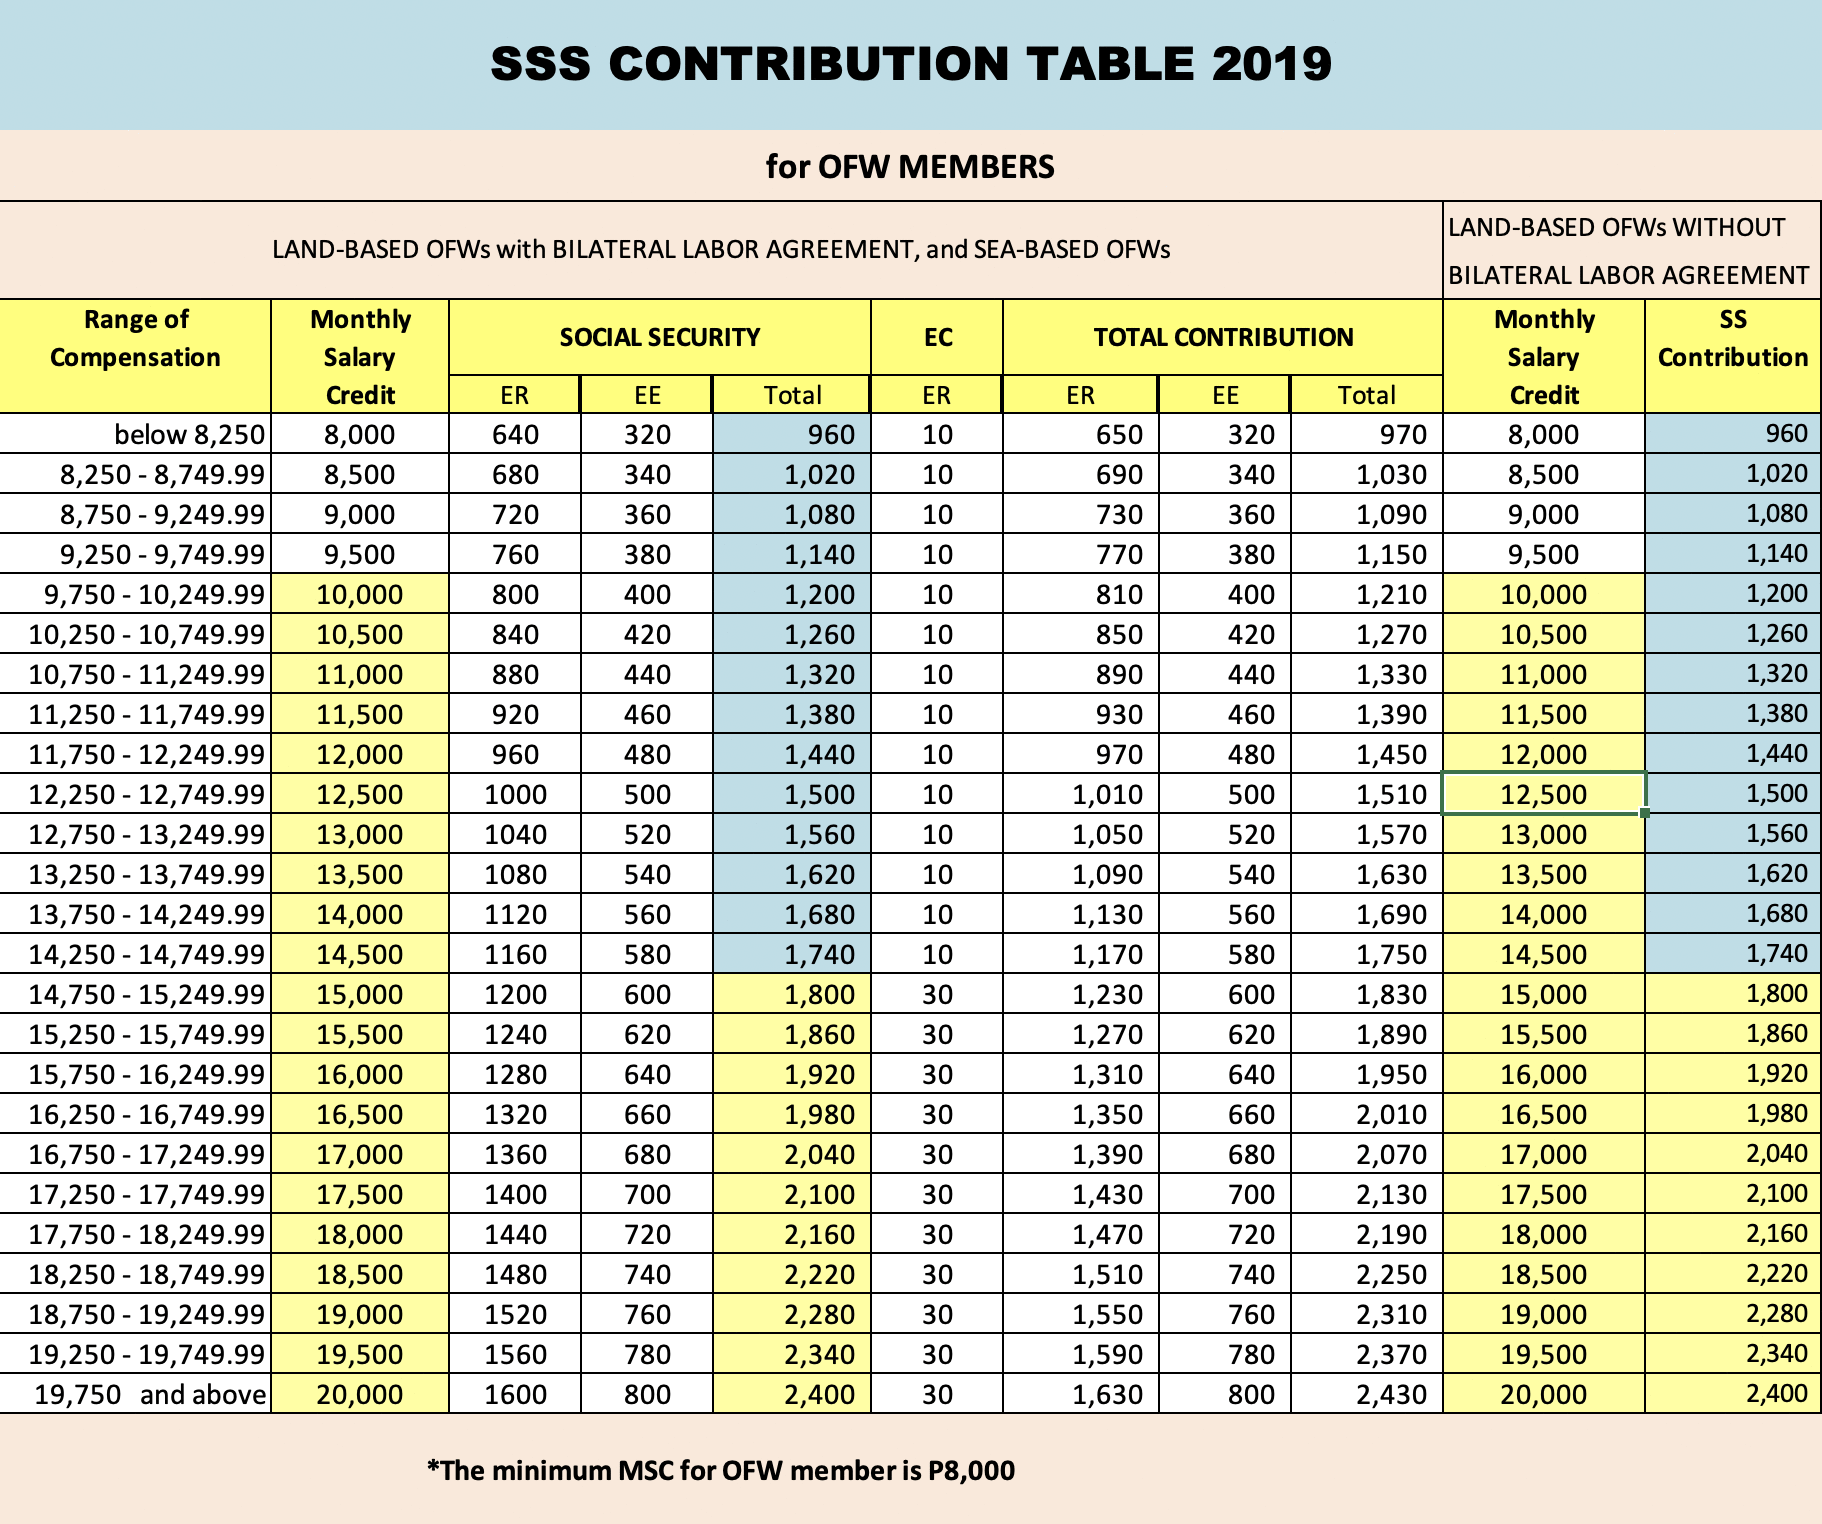 sss contribution table 2019 for ofw members